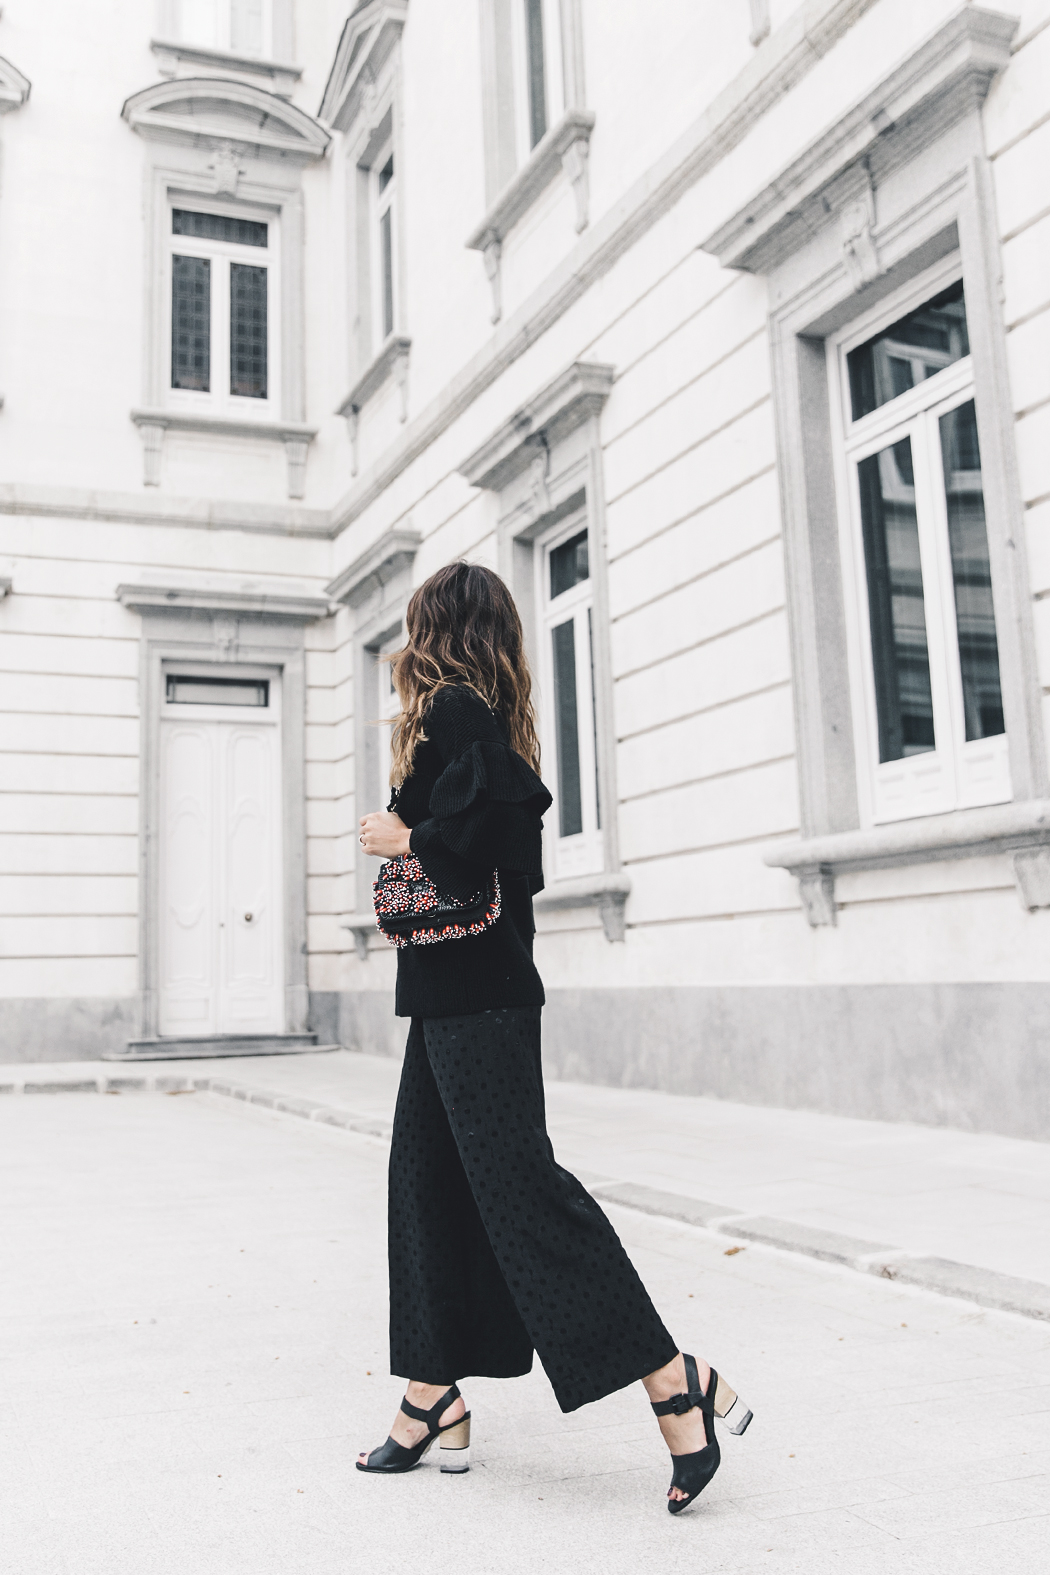 Ruffled_Sleeves_Jumper-Black_Culottes-Dune_Sandals-Beaded_Bag-Outfit-Collage_Vintage-Street_Style-24